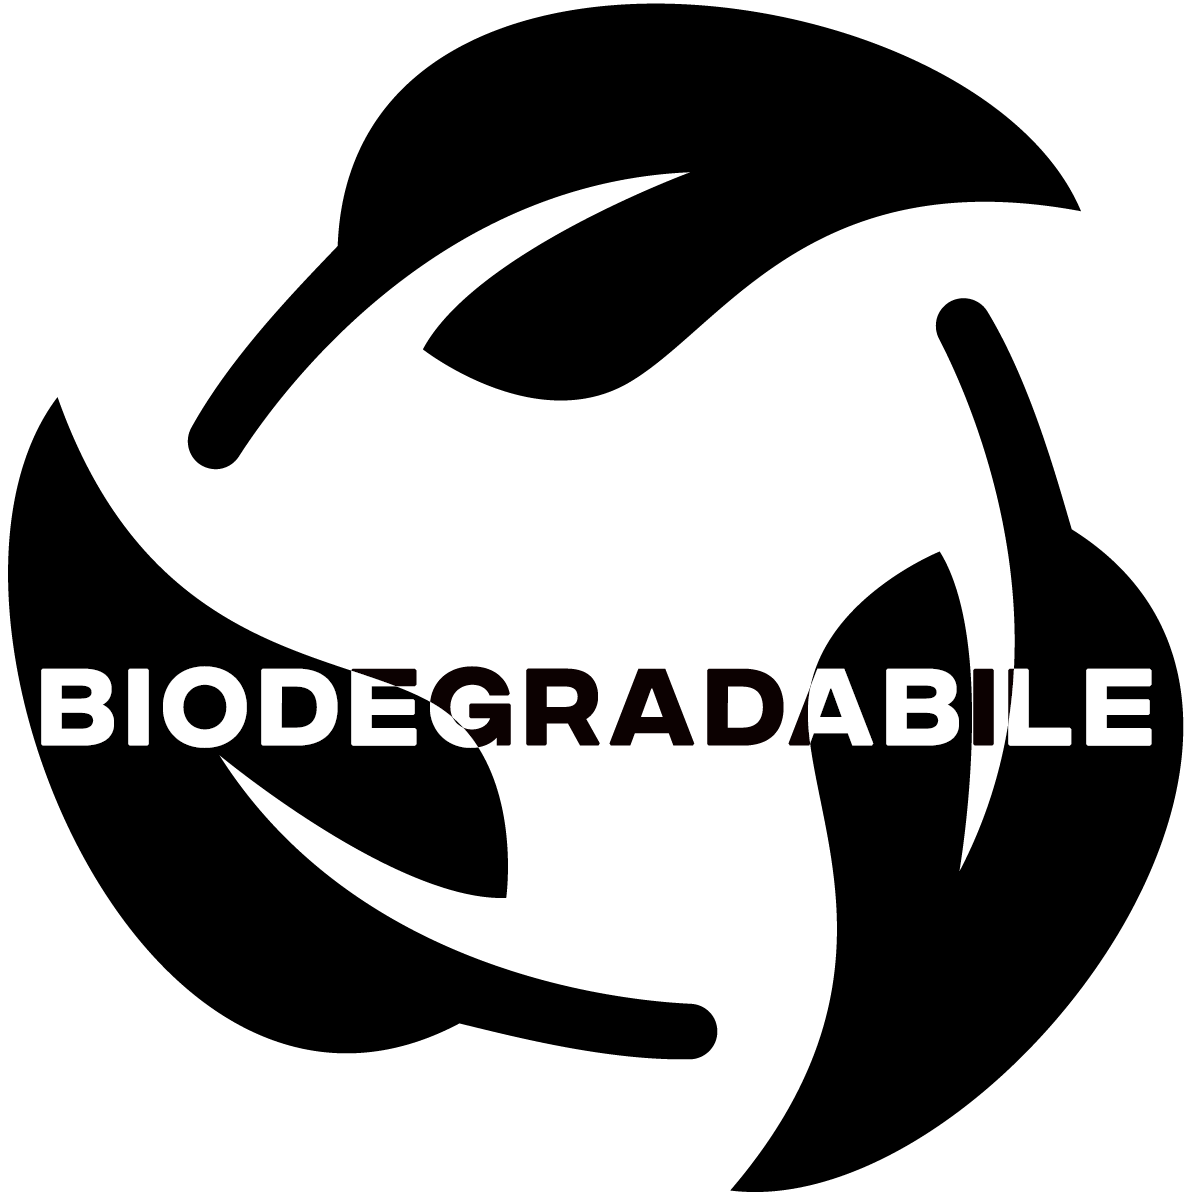 Biodegradabile